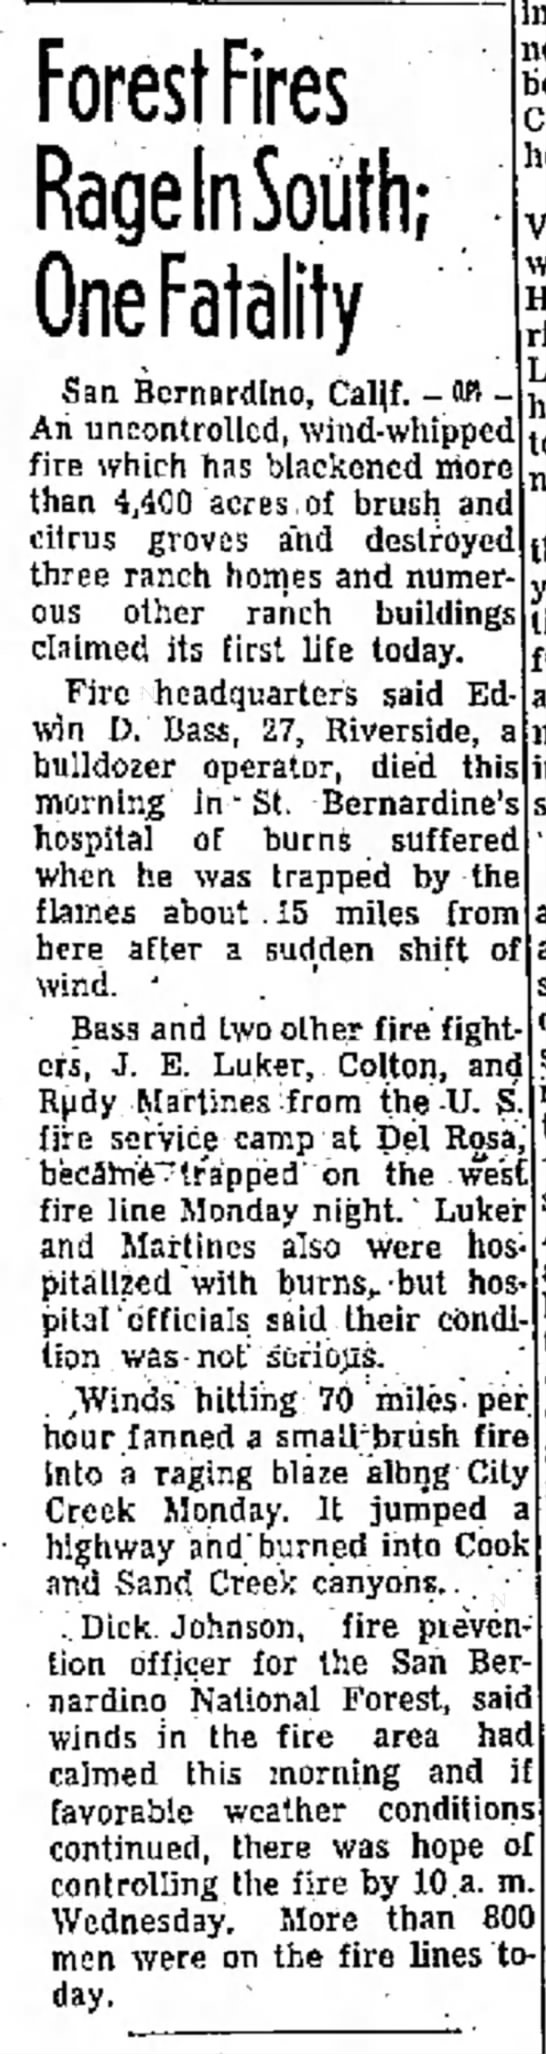 11-20-1956 Edwin D. Bass - Forest Fires Rage In South; One Fatality San...